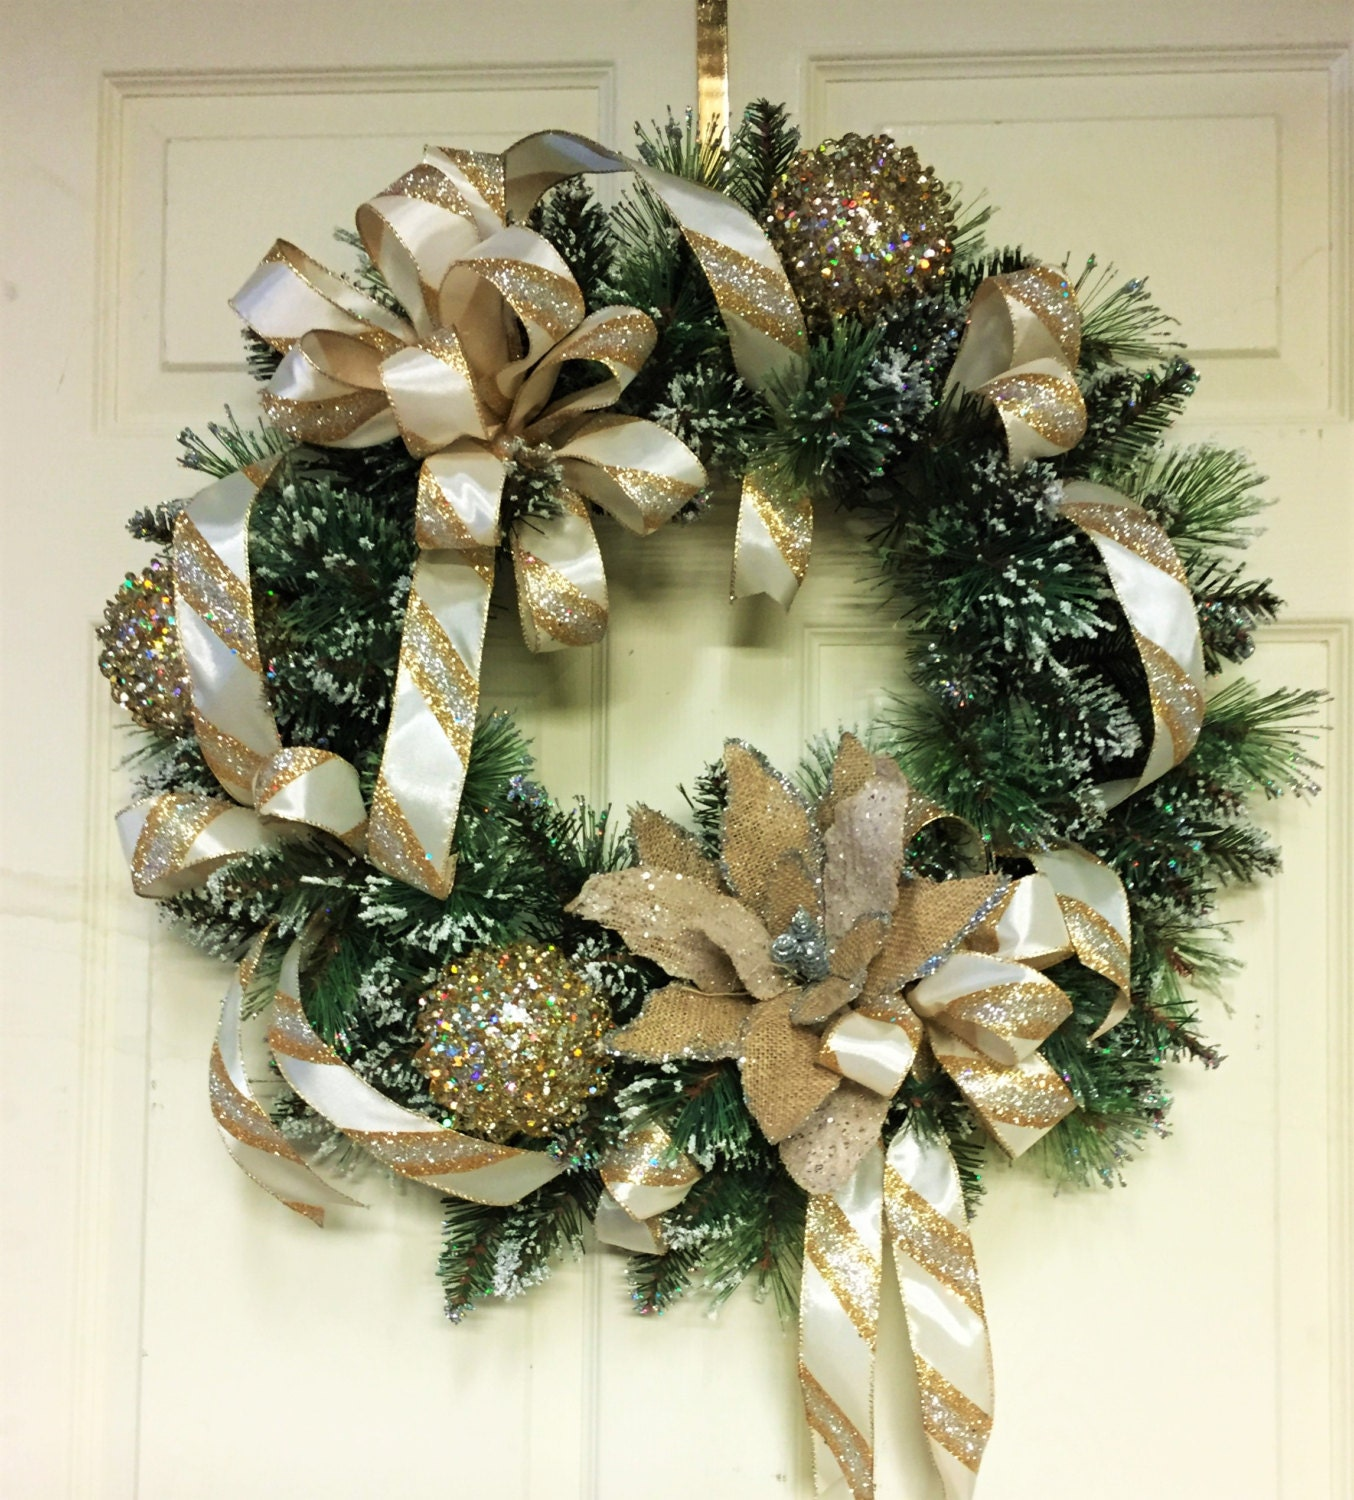 Gold silver and white christmas wreath by cindyssilks on etsy - Silver and white christmas ...